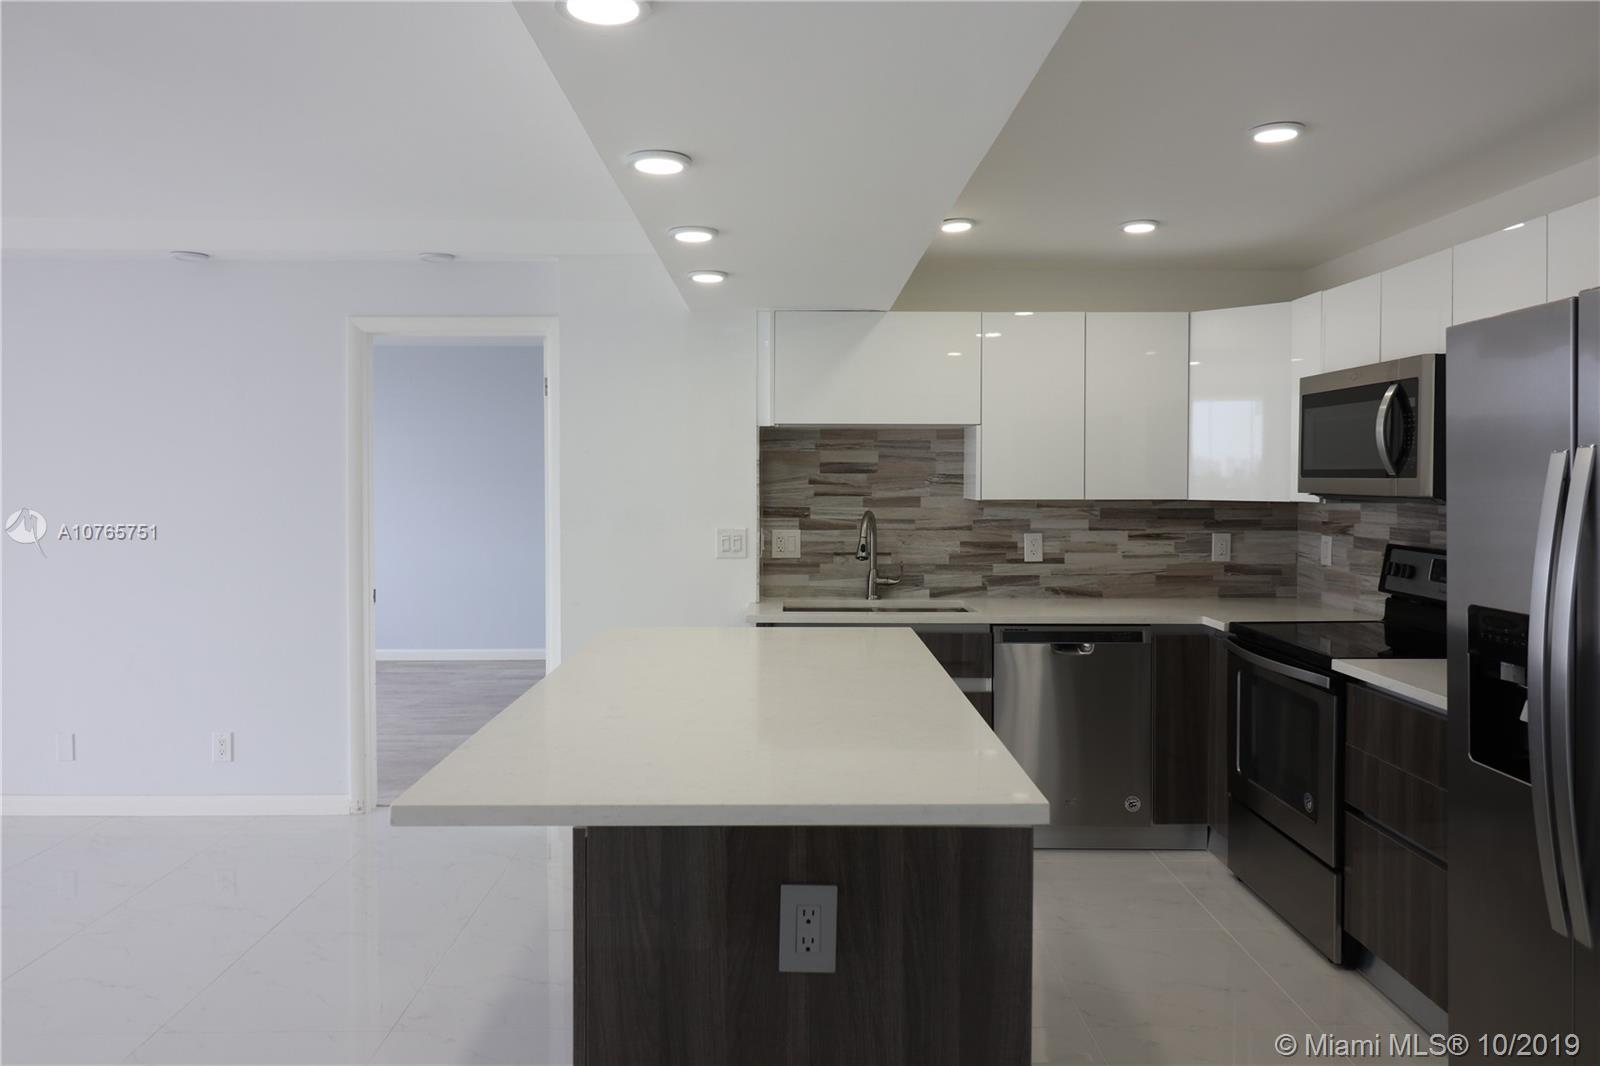 ABSOLUTELY GORGEOUS, FULLY REMODELED, 2 BED/2 BATH UNIT!!! Just a block from Fort Lauderdale Beach, RARE Yacht docking Condo on the Intercoastal! PREMIUM MATERIALS ONLY!! Beautiful Modern open kitchen, all Stainless Steel appliances with Quartz countertops! Stunning designer bathrooms! Beautiful Large Porcelain Tiles in living room, Wood floor in bedrooms and advanced LED lights throughout!! Resort style amenities: Pool, Hot Tub, Fitness Center, BBQ/Grill area, Tiki Bar, Clubroom, Library, Play room and Dockage as available! Walking distance from the best Restaurants, Events, the Brand New Las Olas Beach Park, Swimming Hall of Fame, Marinas! SPECIAL FINANCING WITH KELLER MORTGAGE, FHA APPROVED!